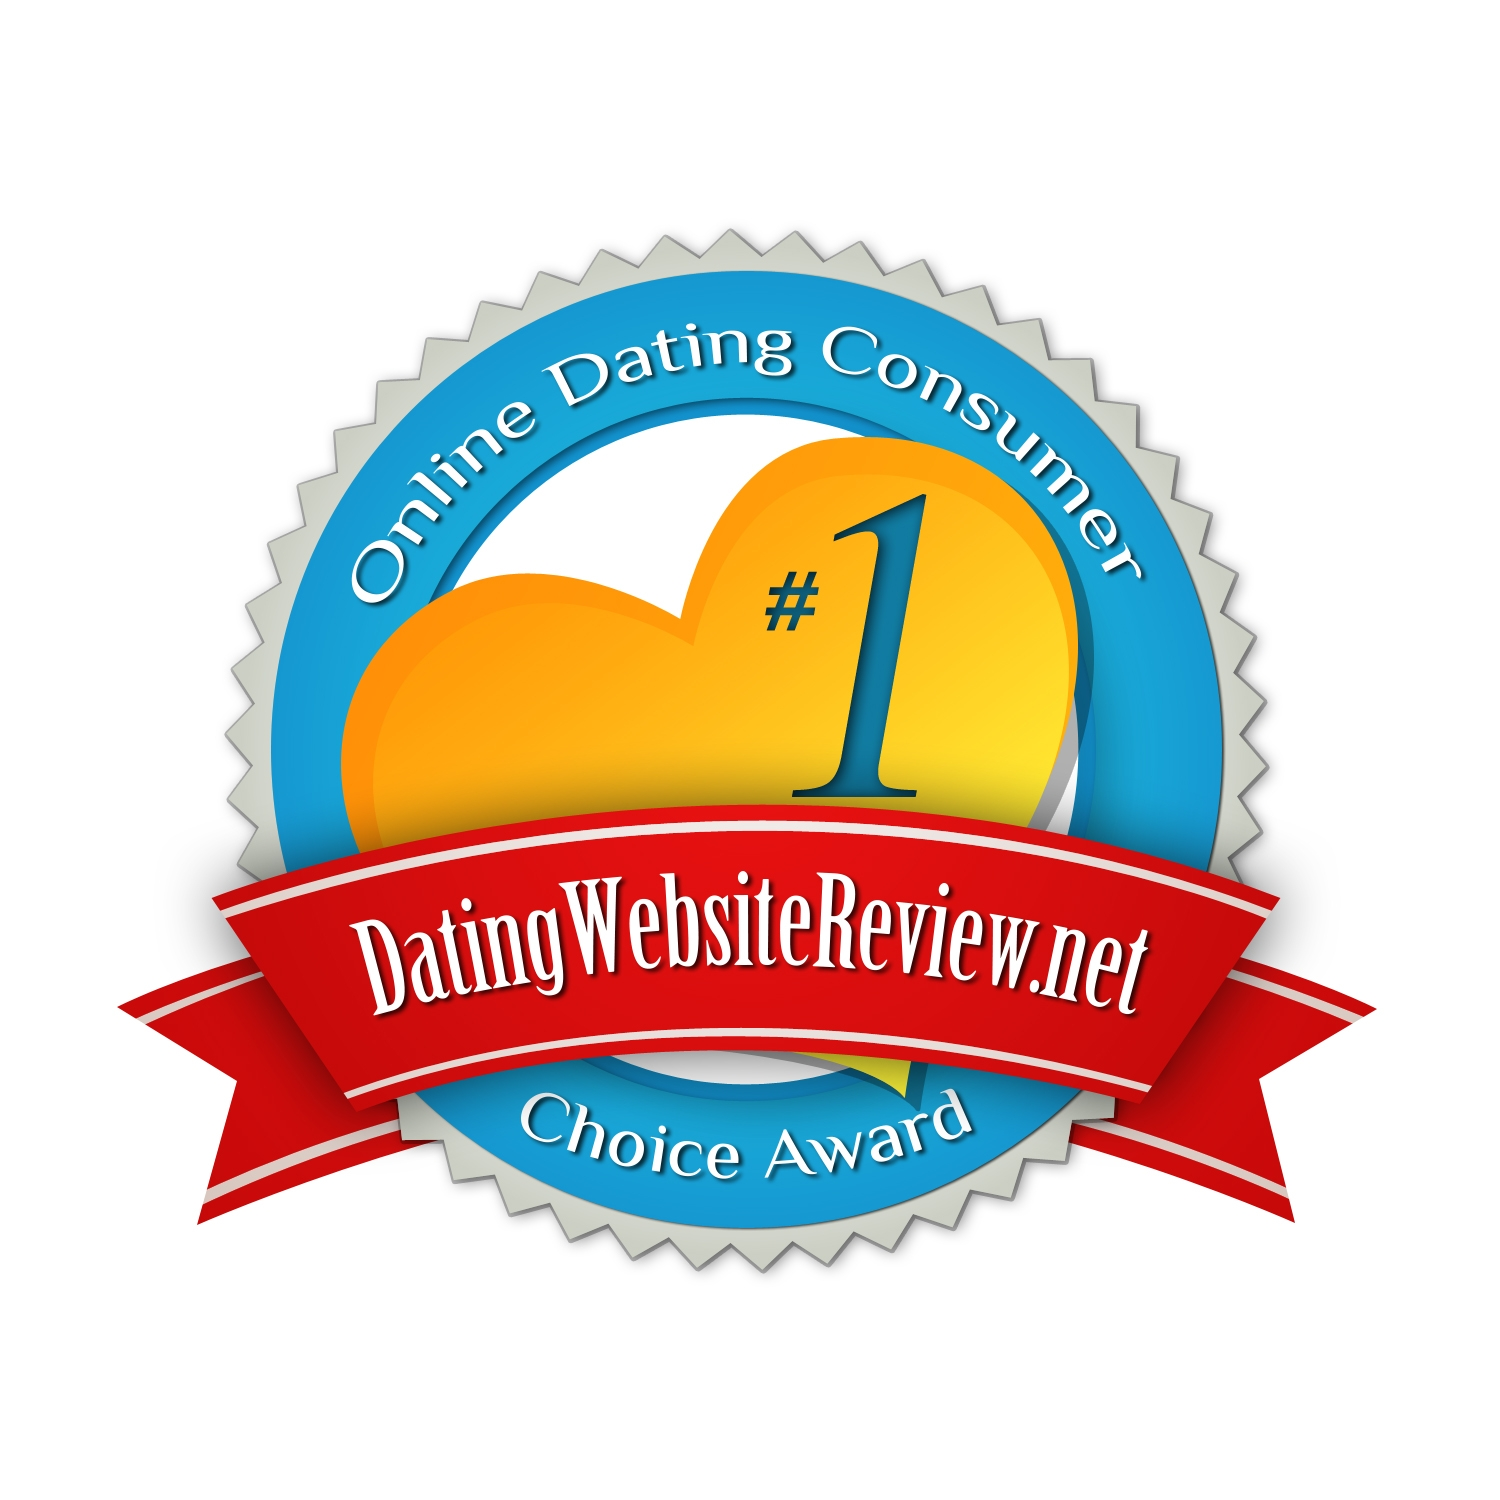 Online Dating Awards